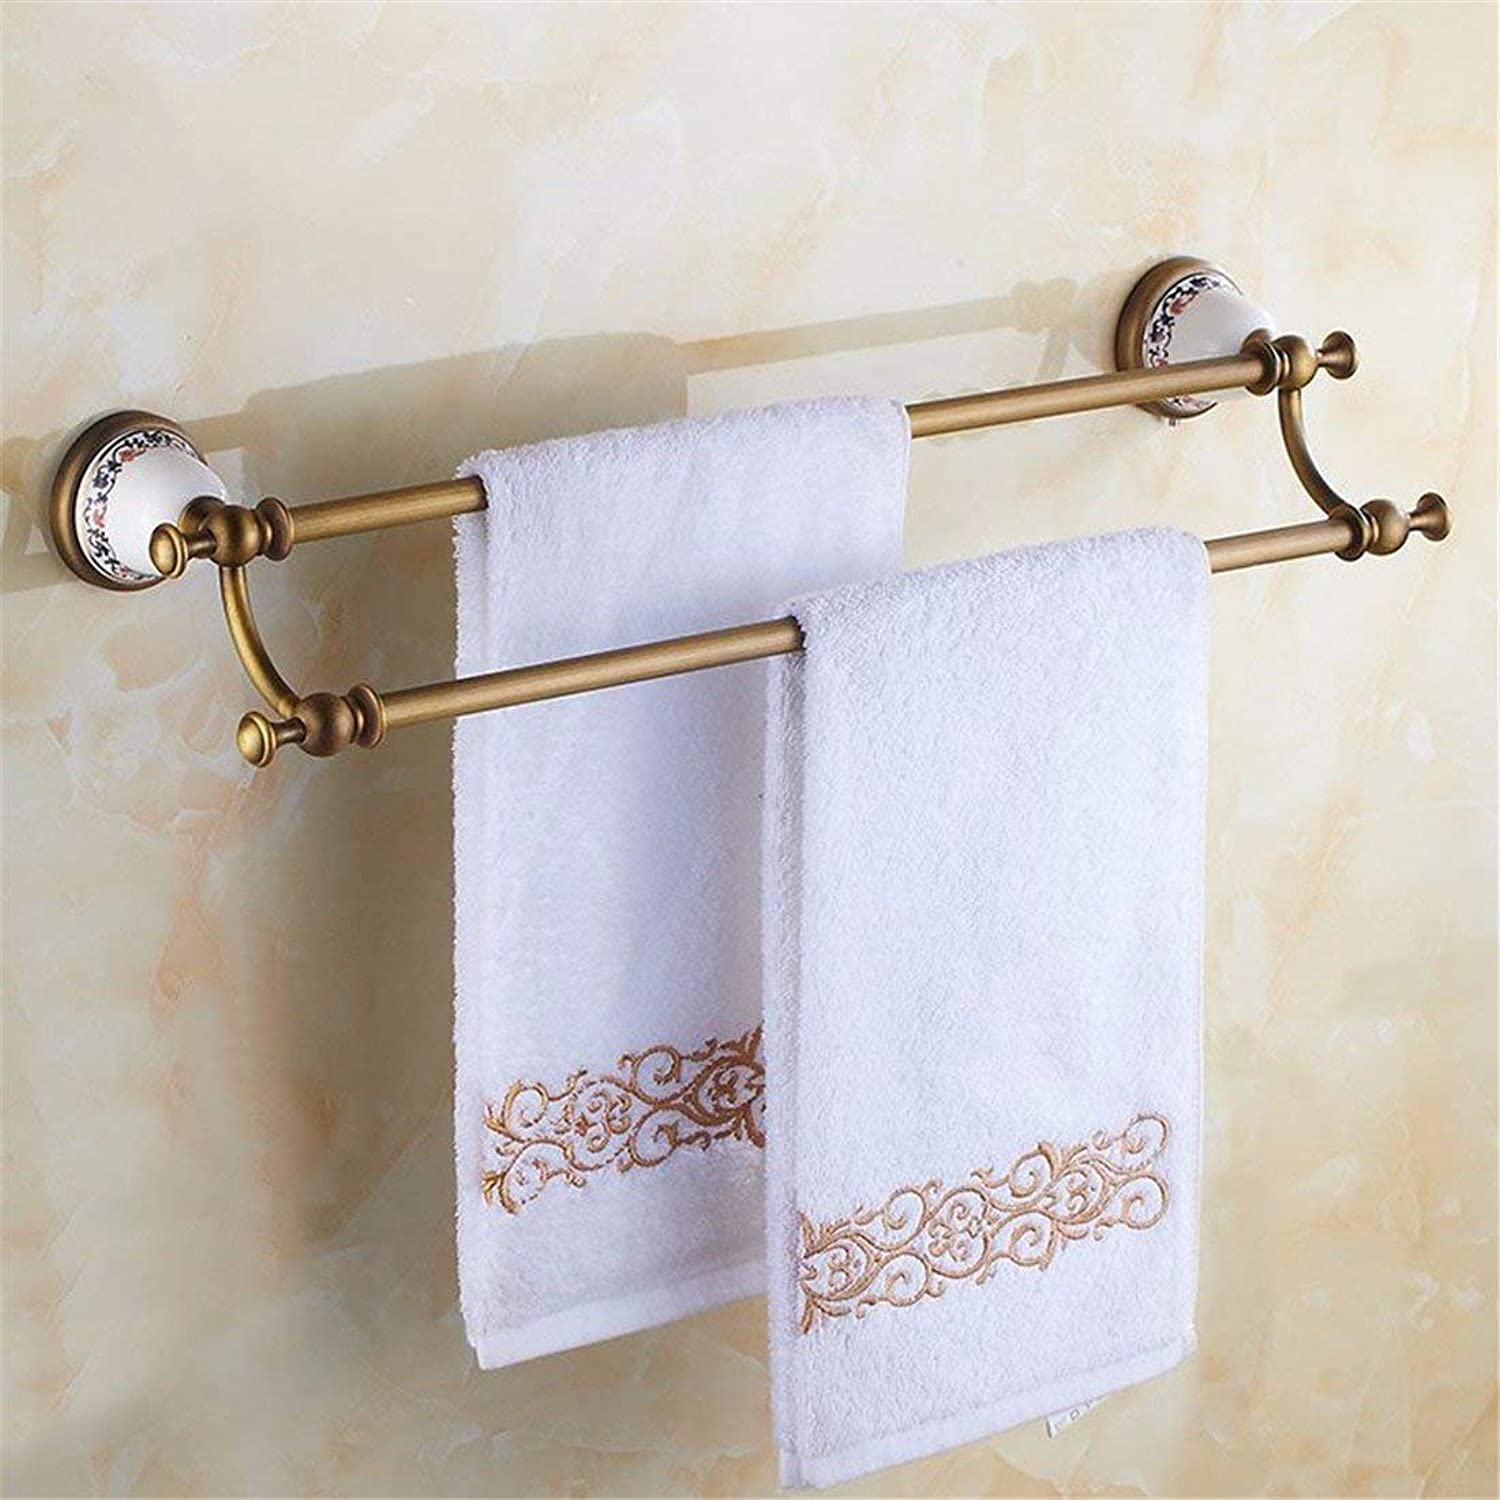 European Style of Copper Base Full Archaize Accessories for Bathroom with Ceramic and Hair-Towels, Bipolar